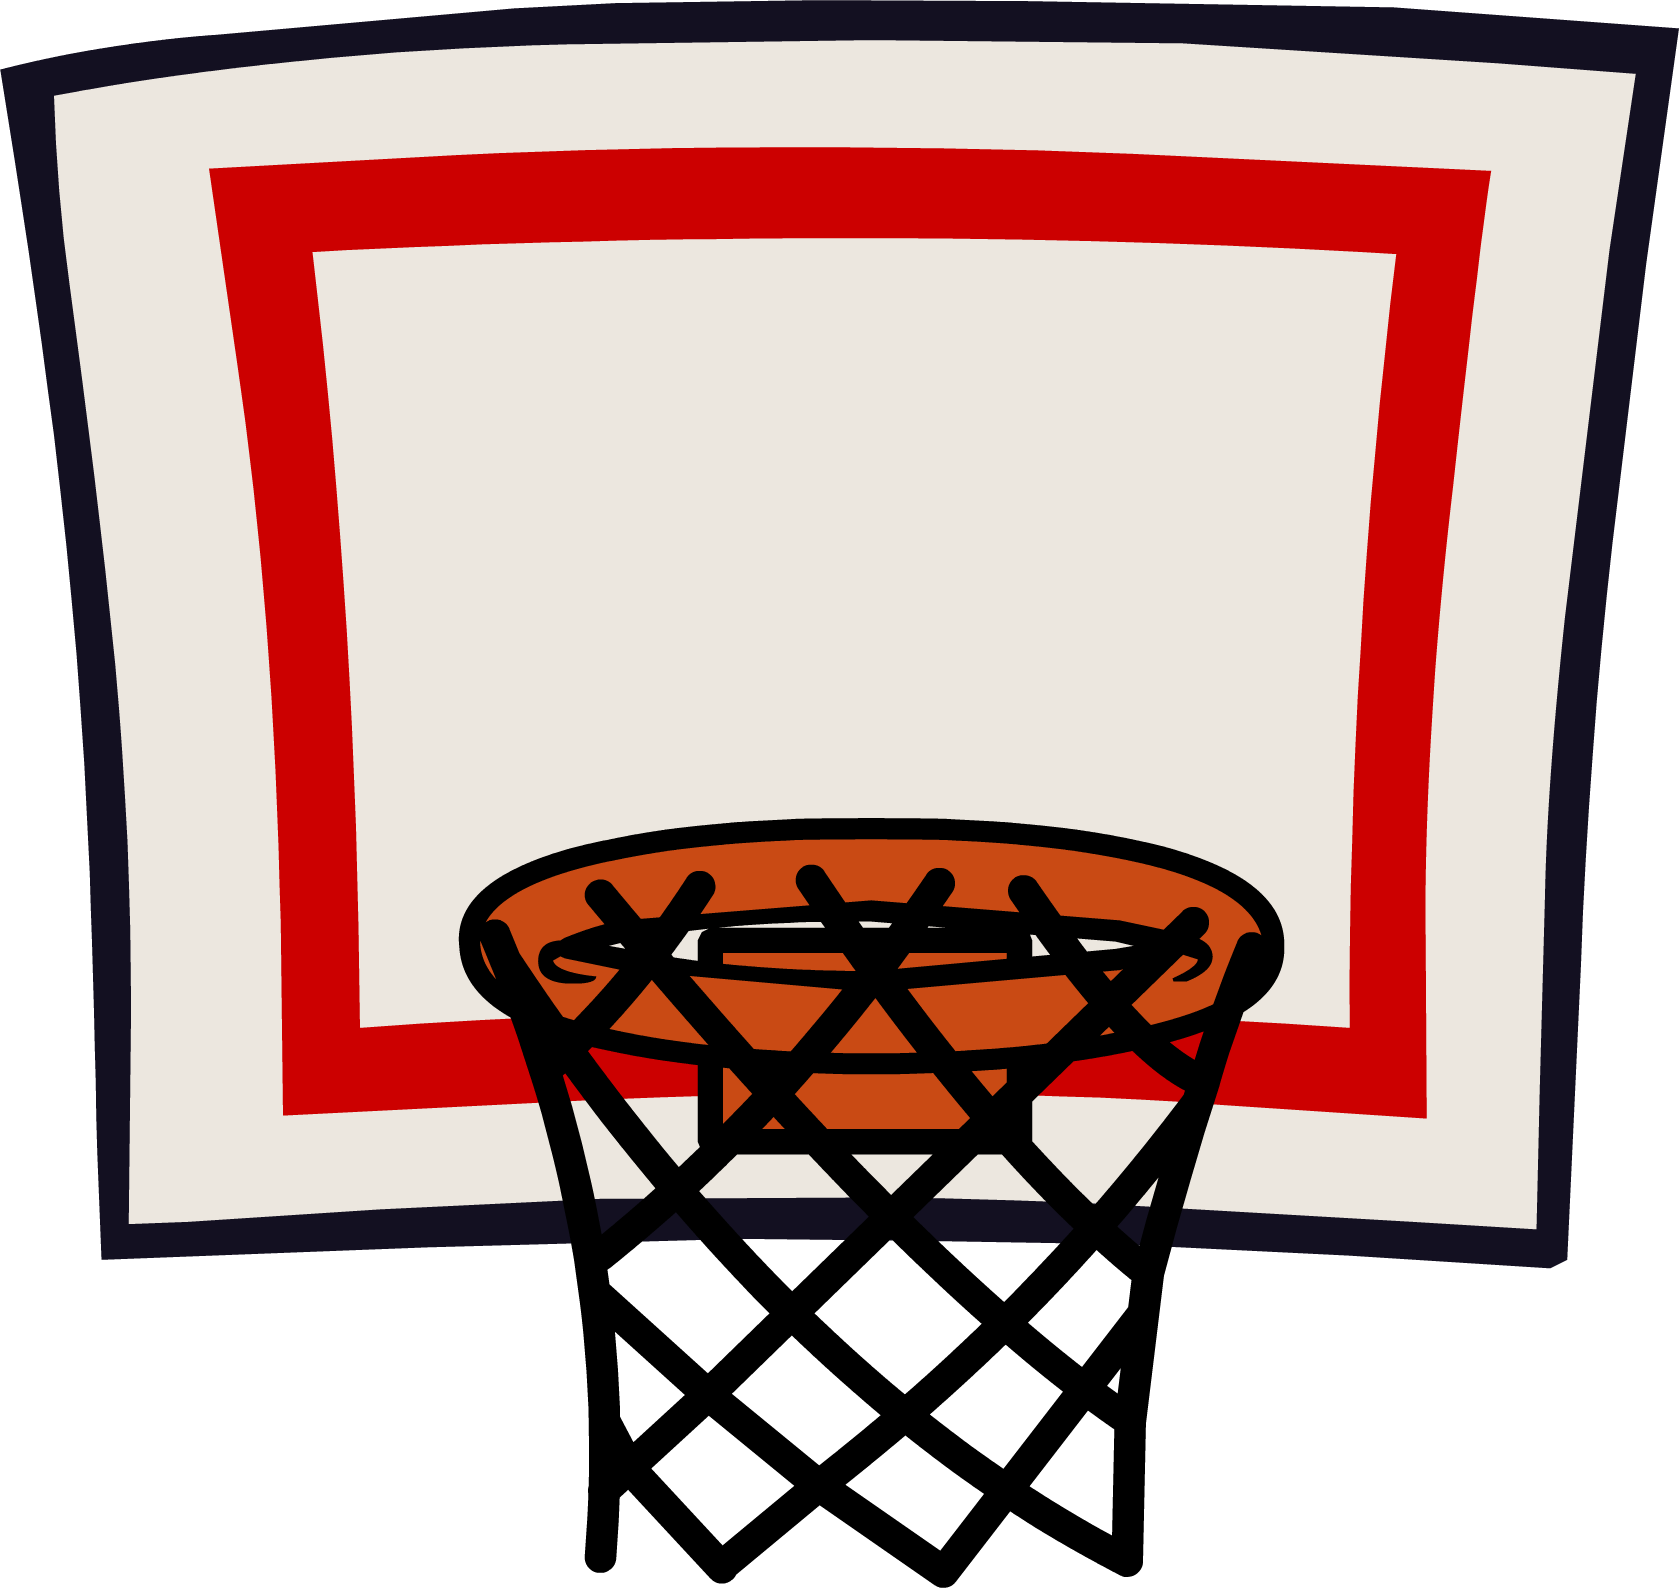 Basketball hoop clipart png - ClipartFest